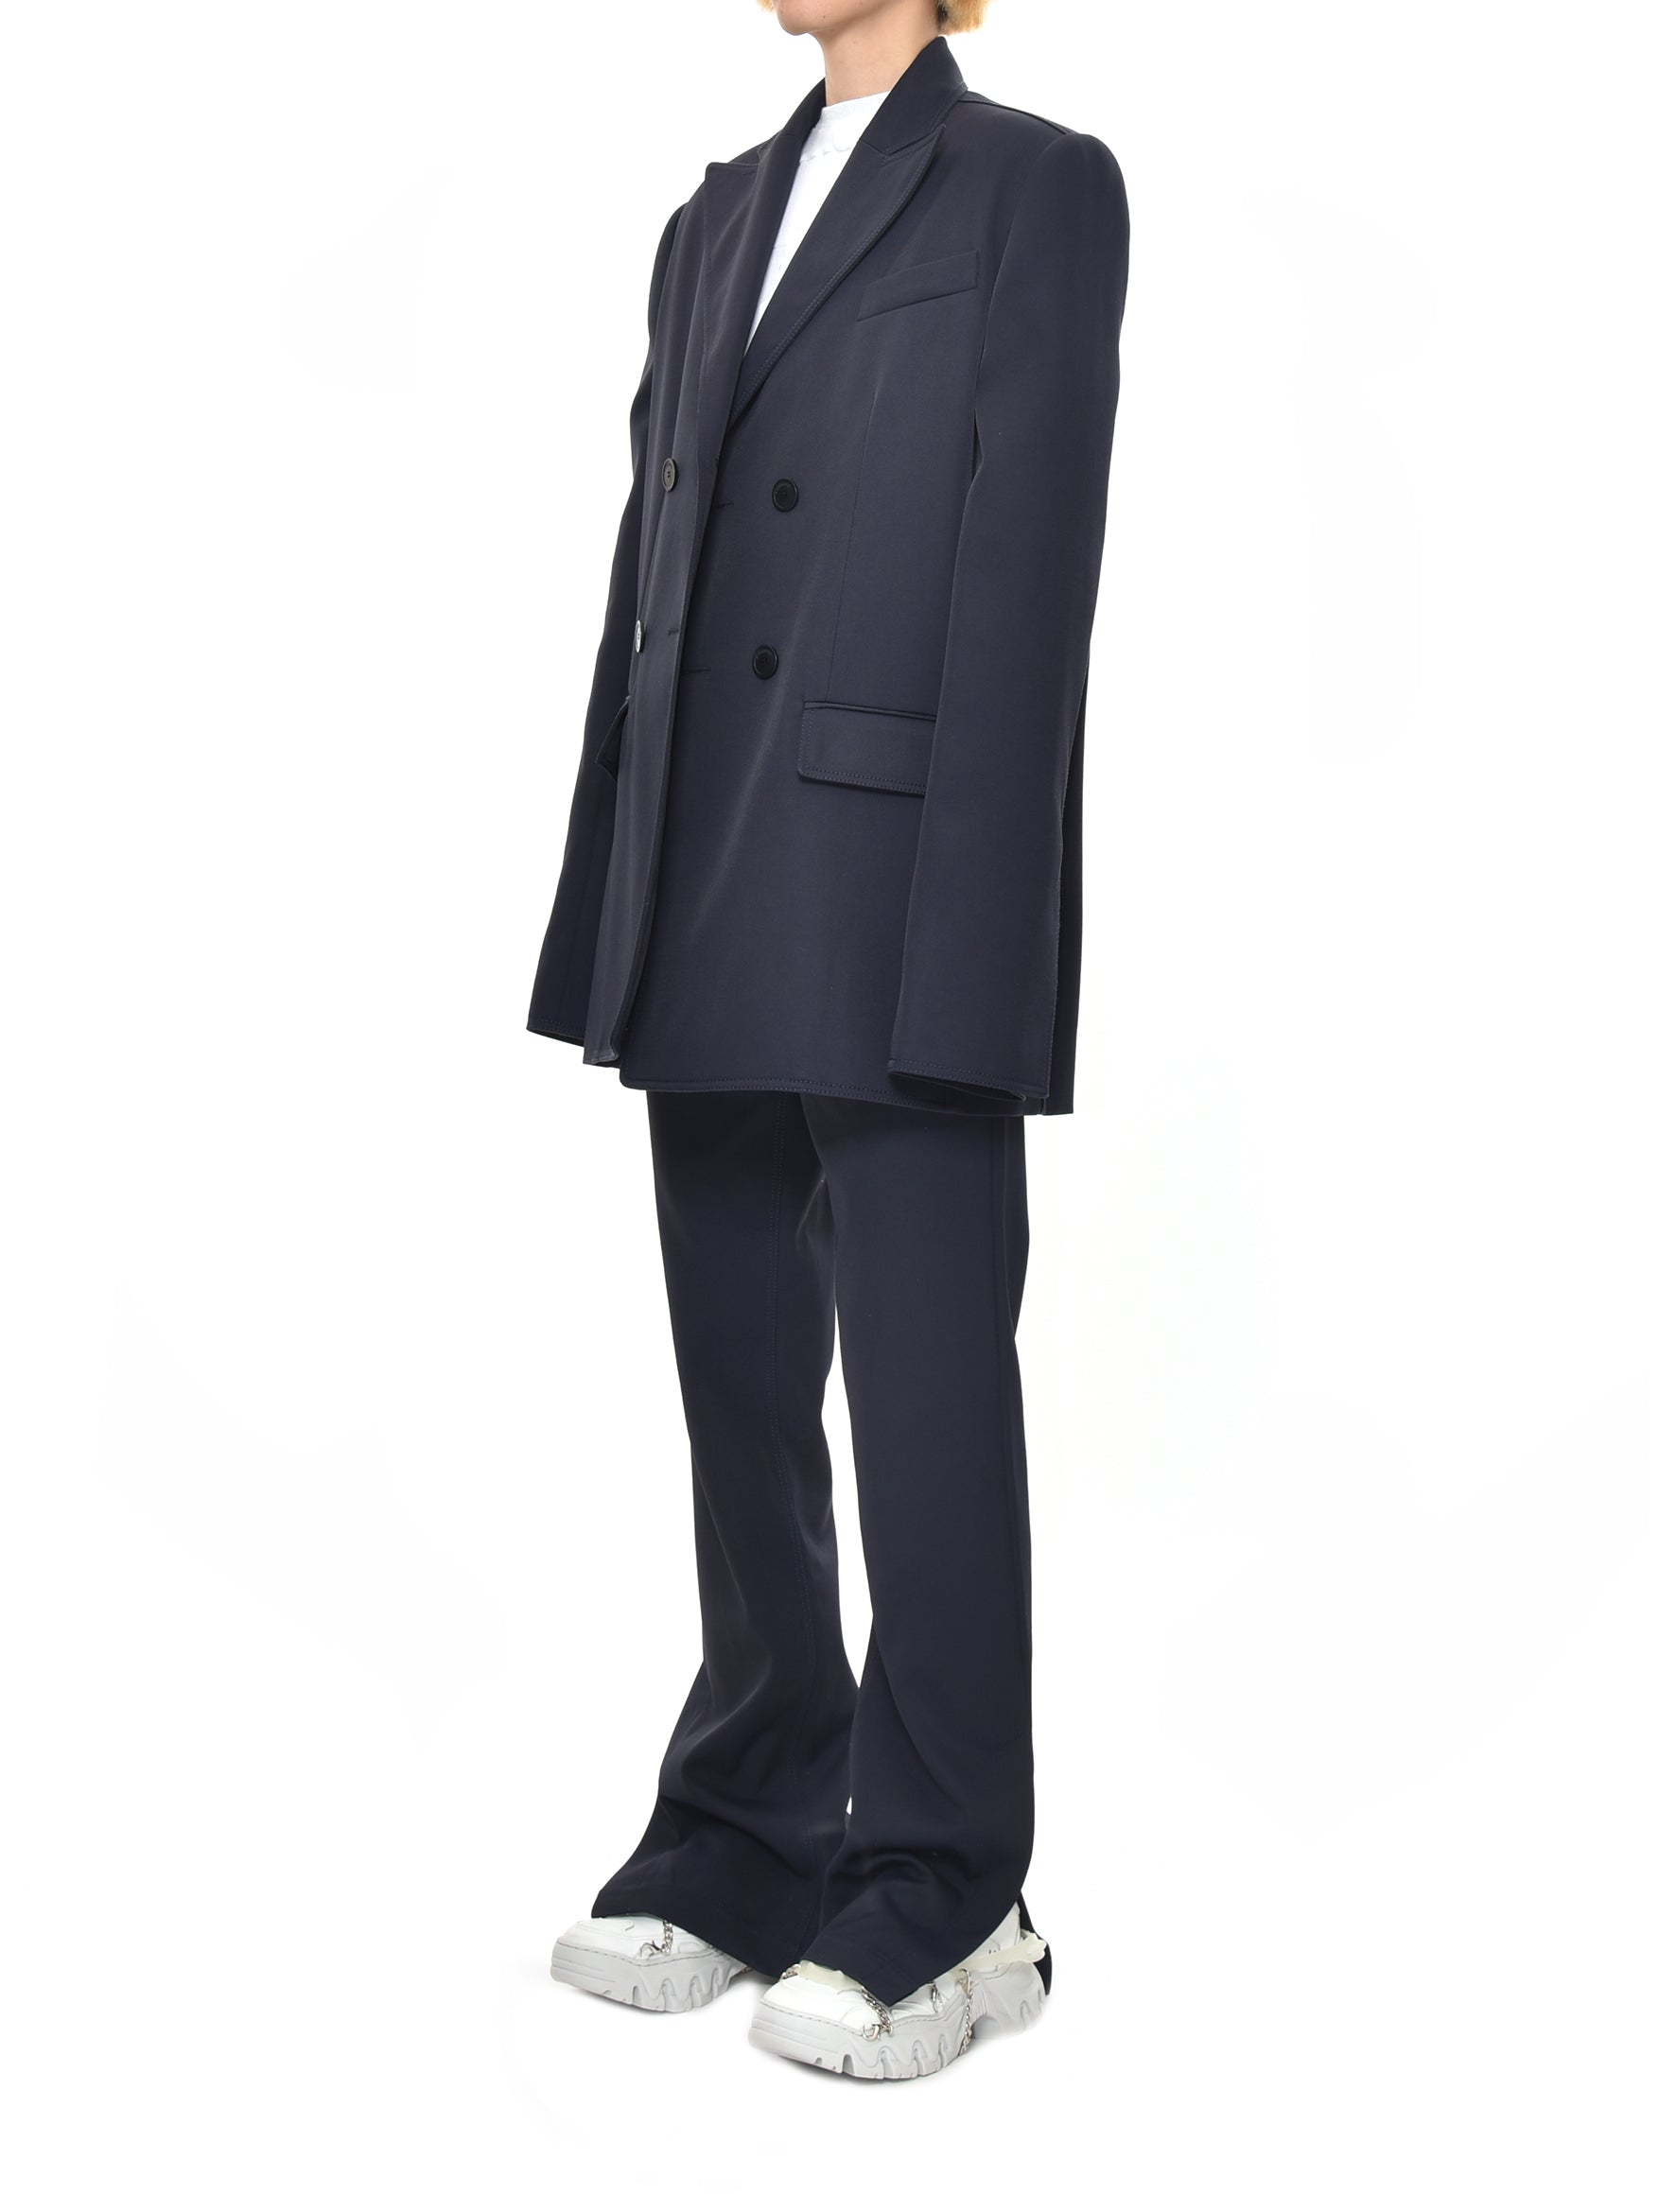 Topstitch Navy Suit Jacket